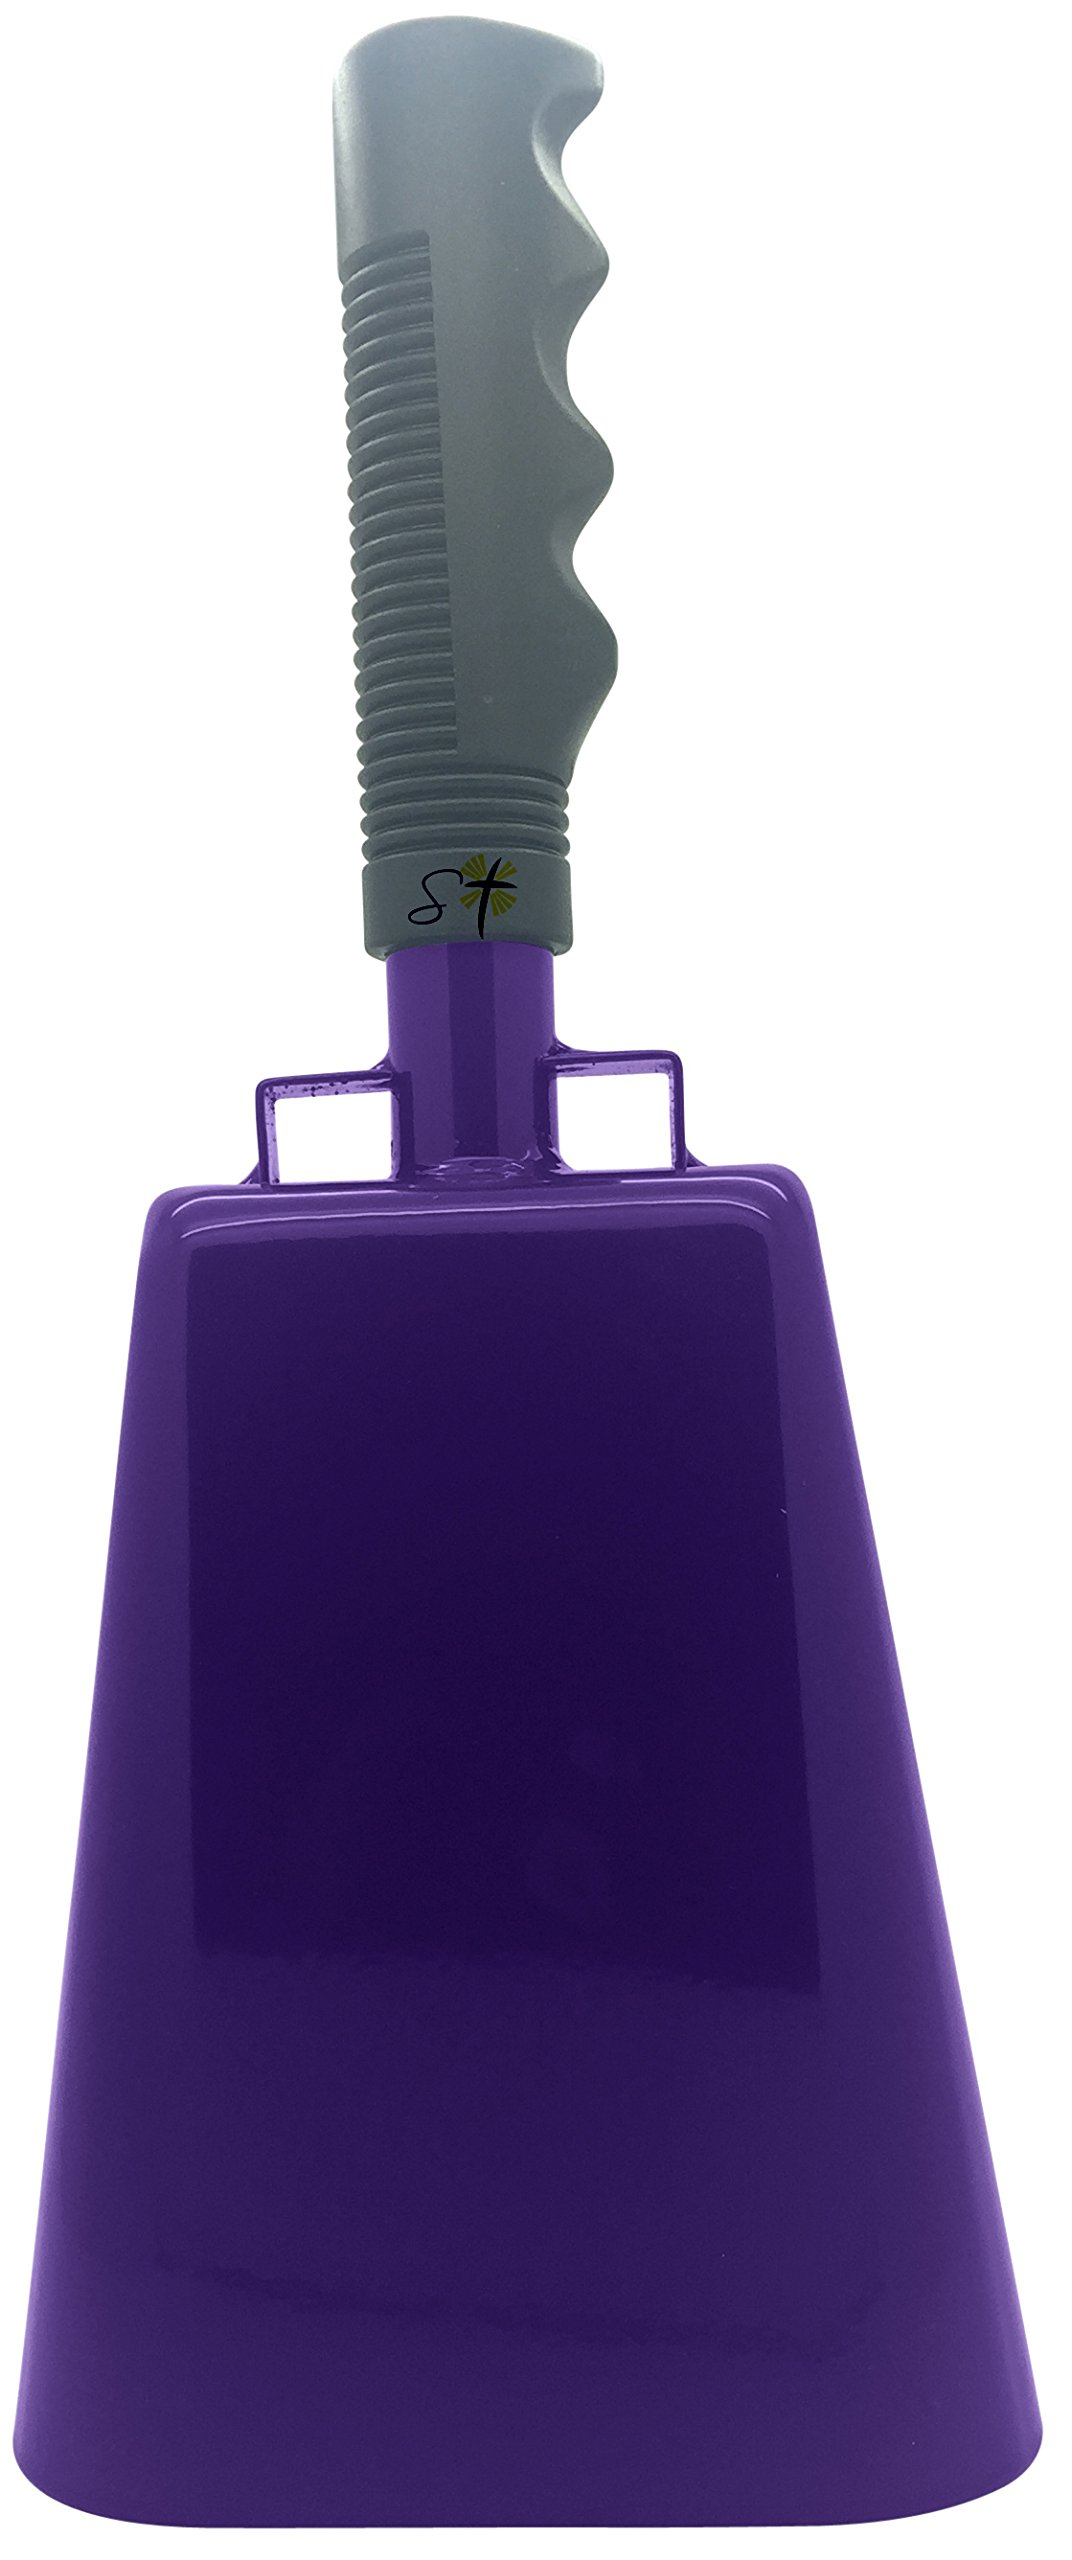 11.2 inch Purple Bell Black Handle Cowbell with Stick Grip Handle Used for Cheering at Sporting Events - Cow Bell by Stewart TradingTM by Stewart Trading LLC